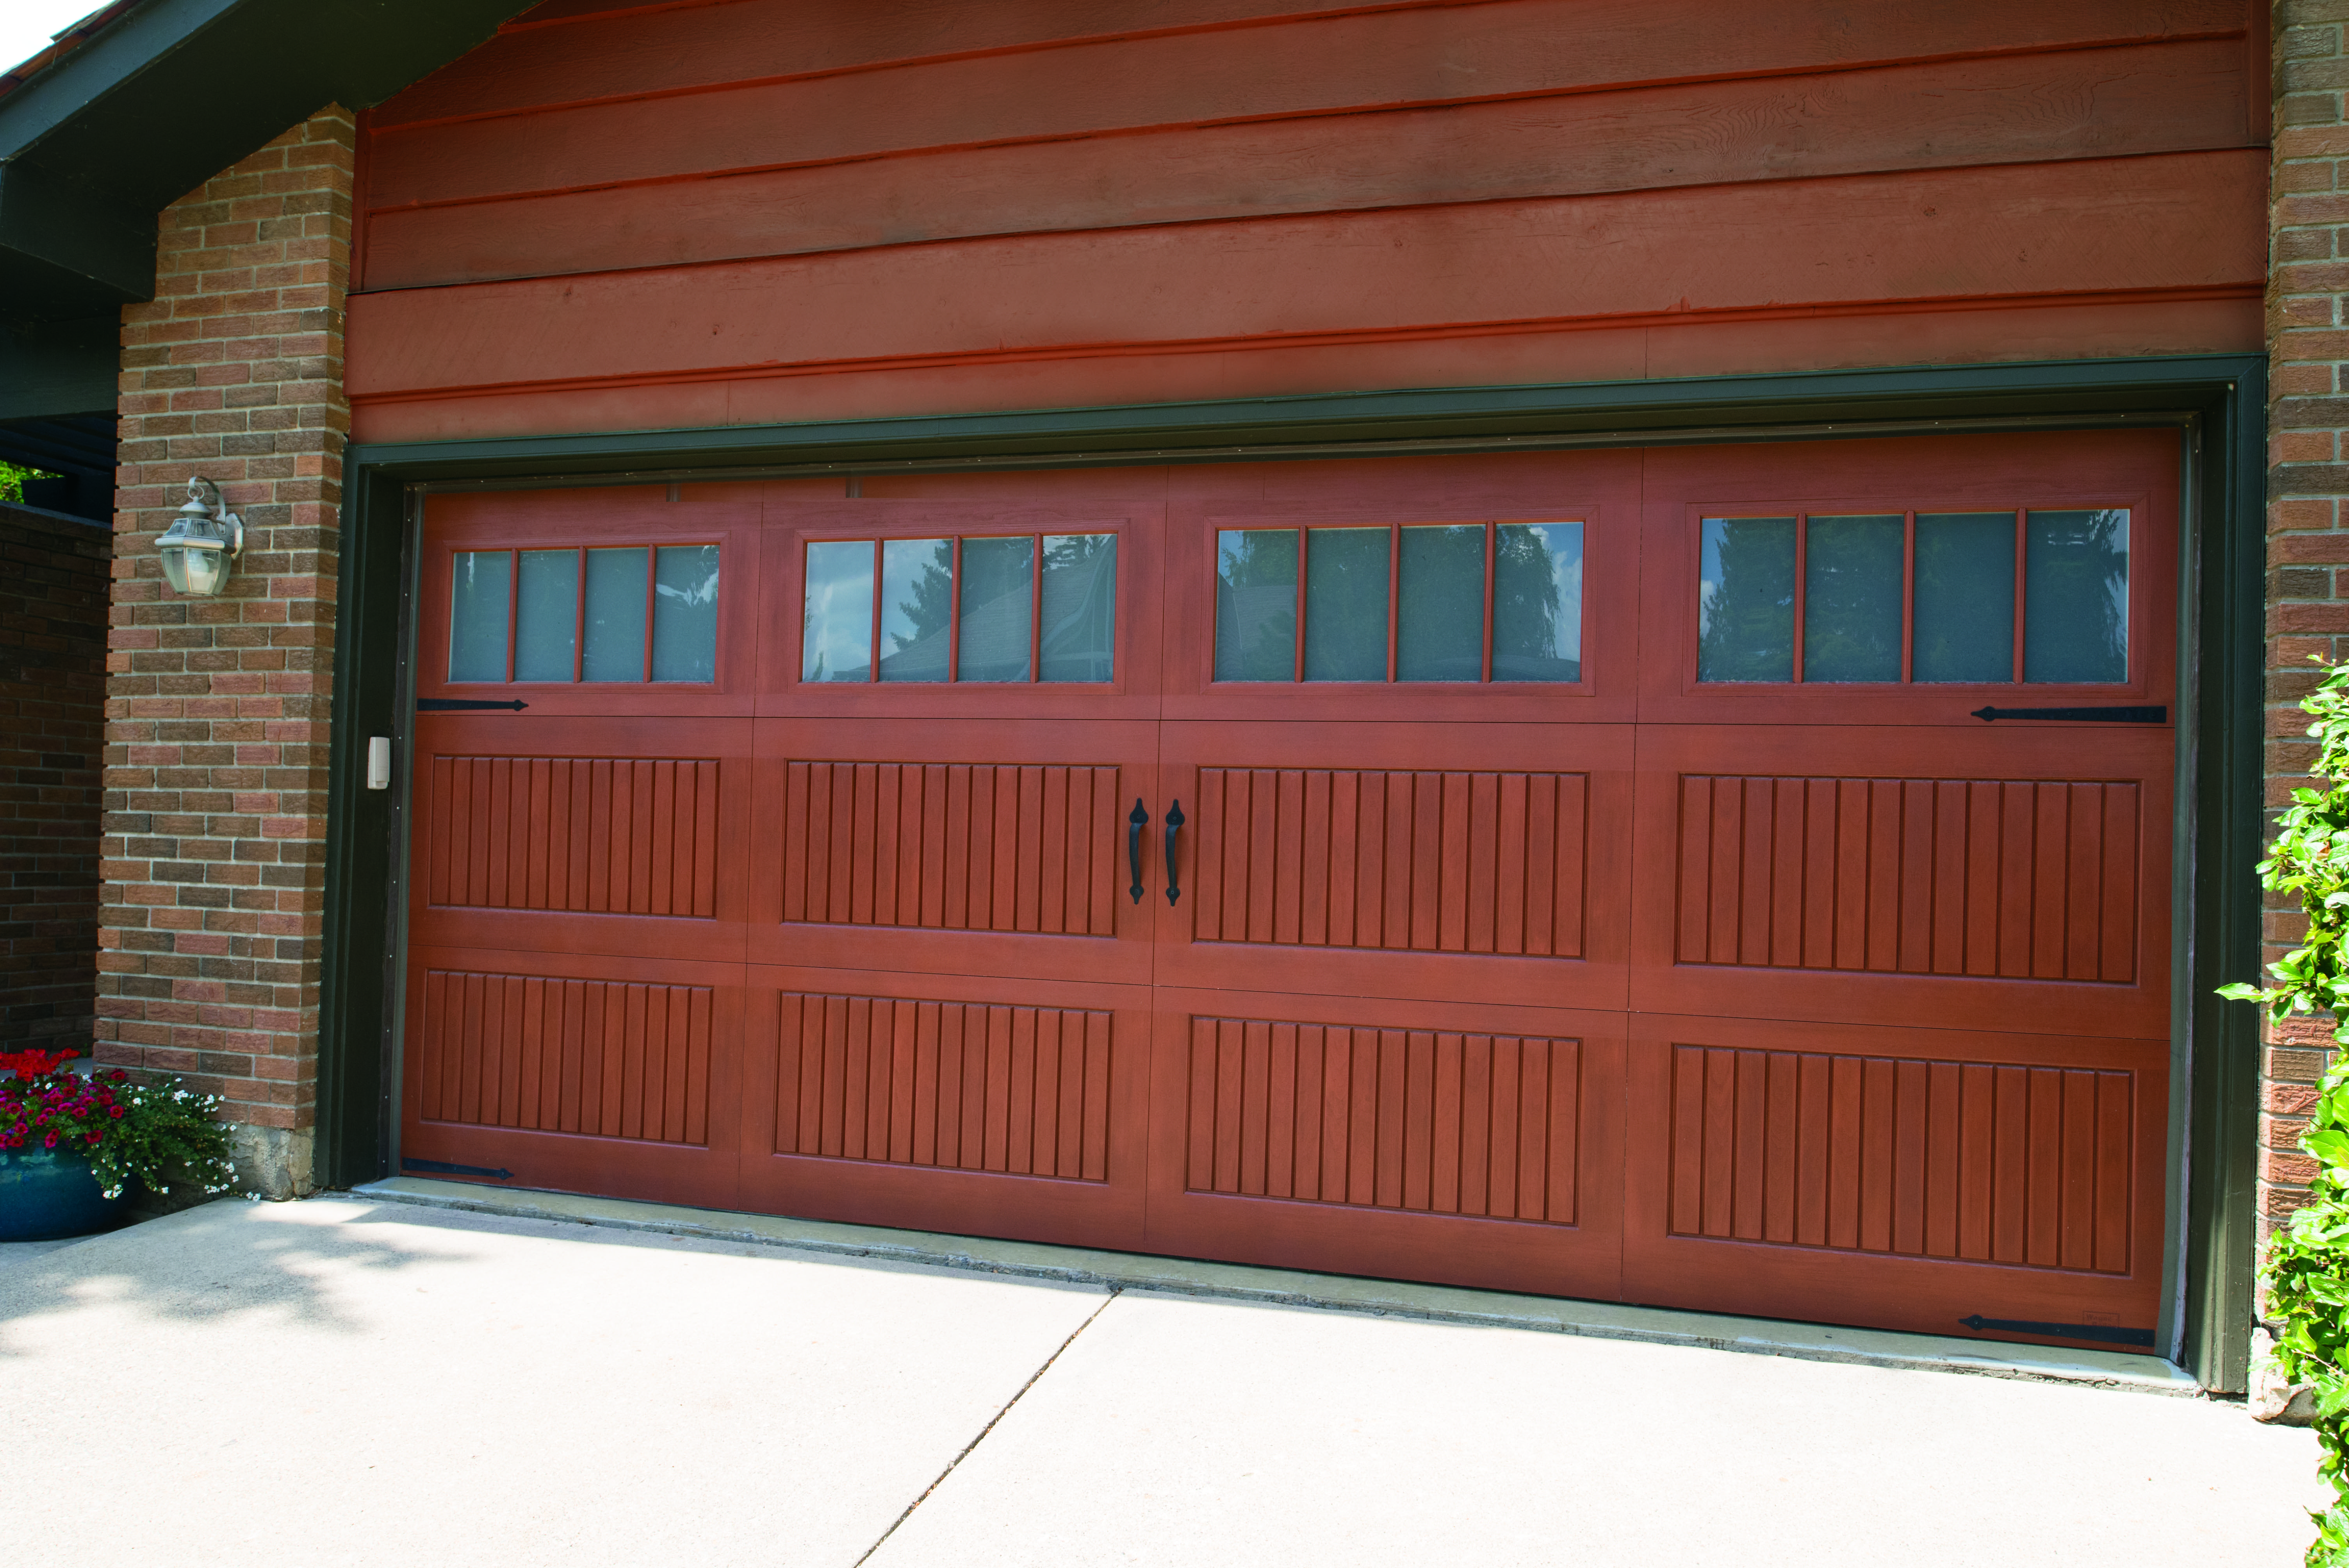 Wayne dalton 9100 garage door home design Wayne dalton garage doors